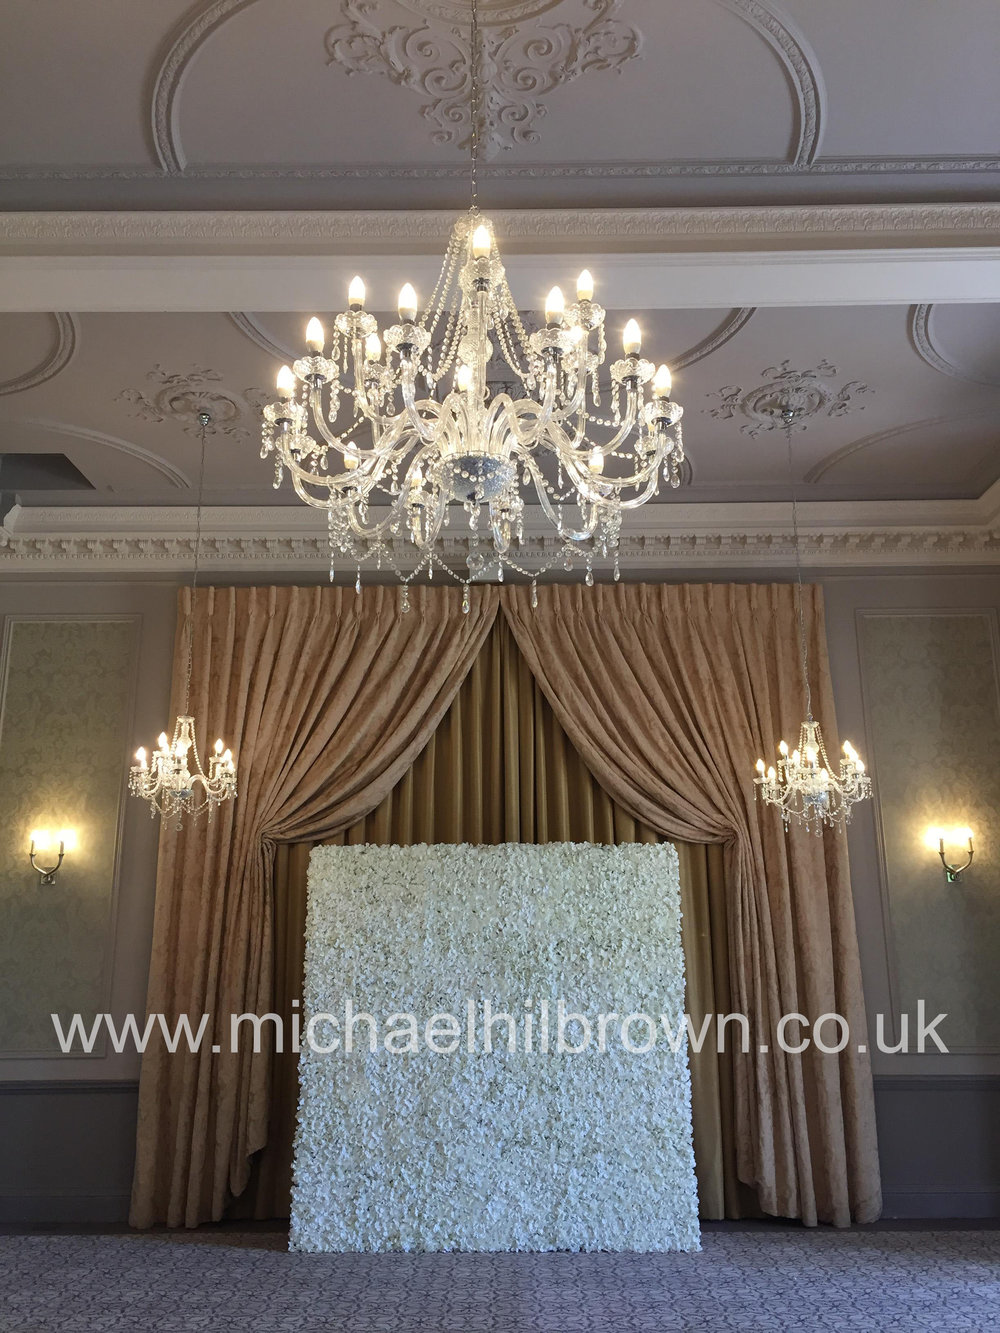 Essex Artificial Flower Wall Hire - Essex Wedding Florist